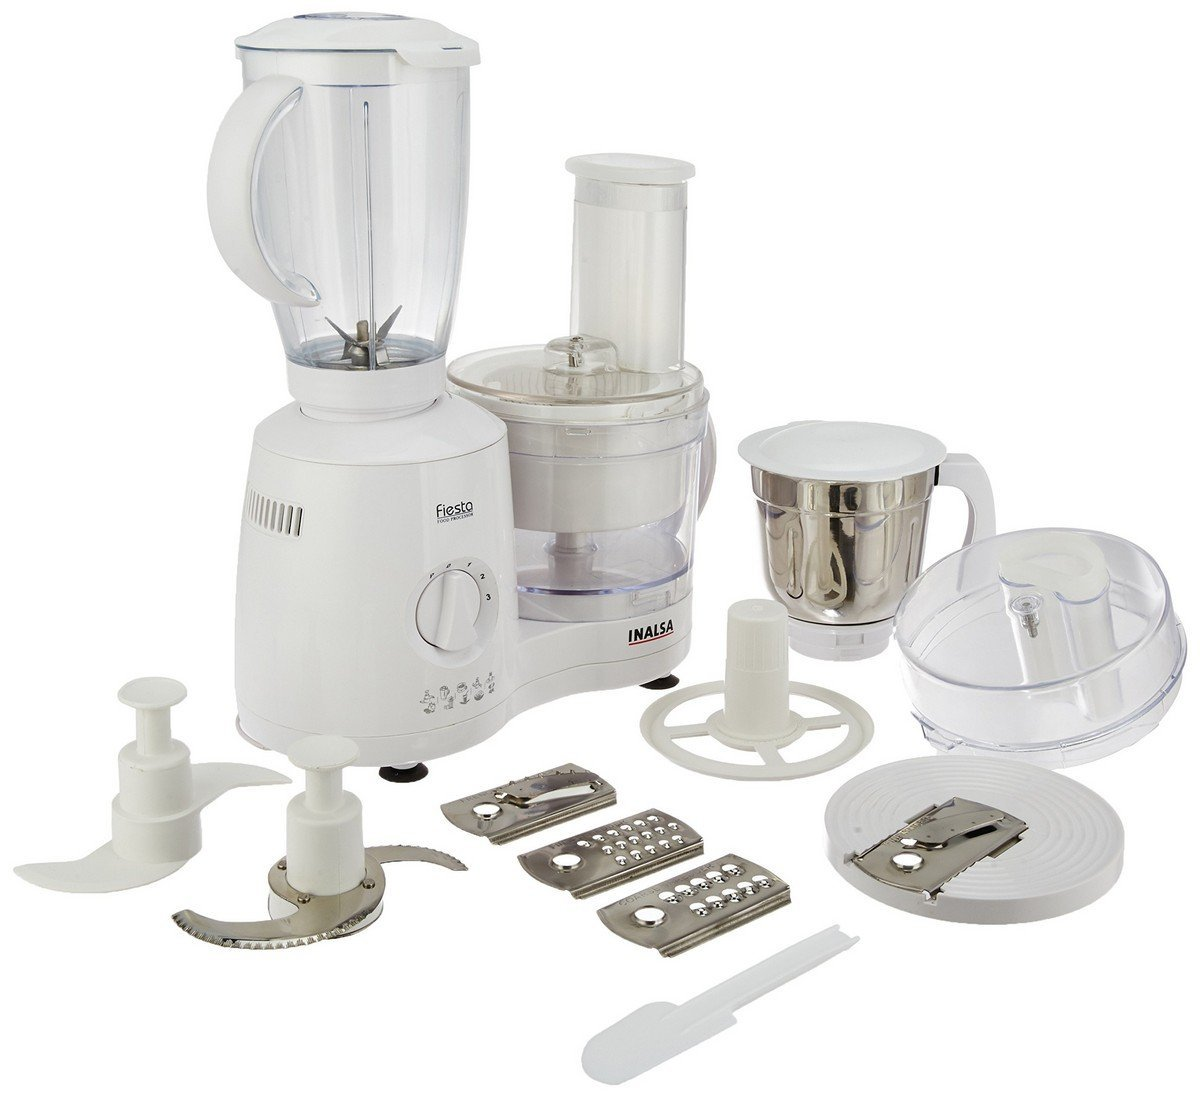 Top 10 Best Food Processor Price, Reviews & Buying Guide 2018